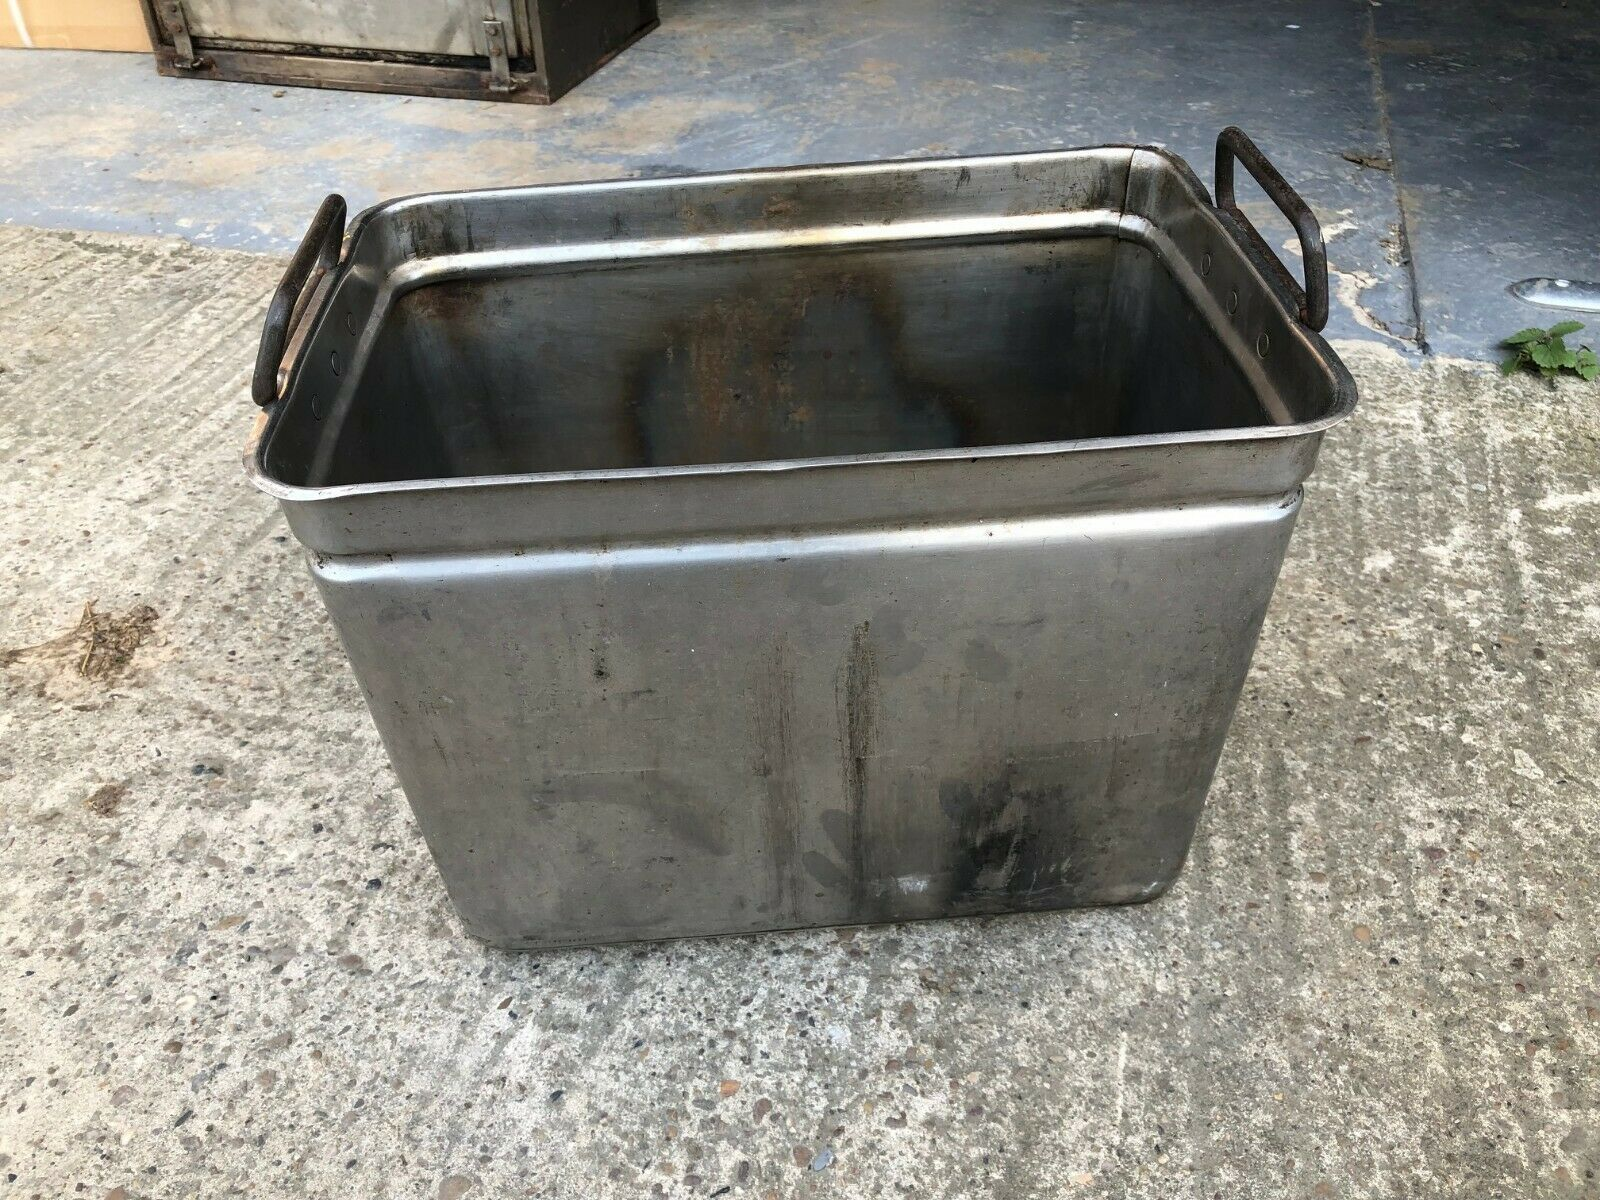 British Army Large Stainless Steel 20 Litre Cooking Pot NO LID  Grade 1